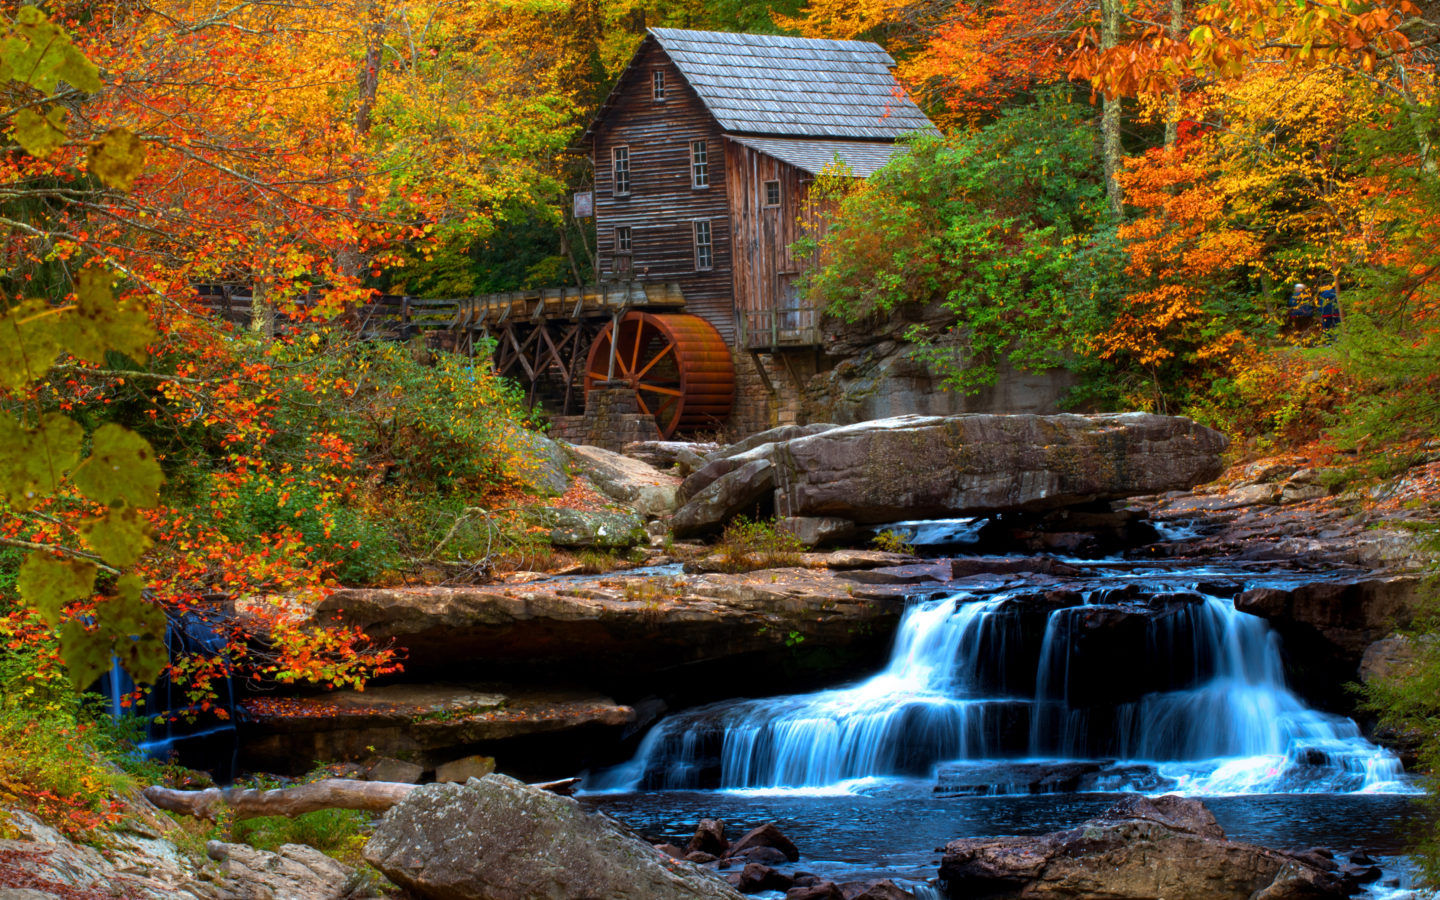 Fall Season Wallpapers For Iphone Old Wooden Mill Water Flow Rock Waterfall Hd Wallpaper For